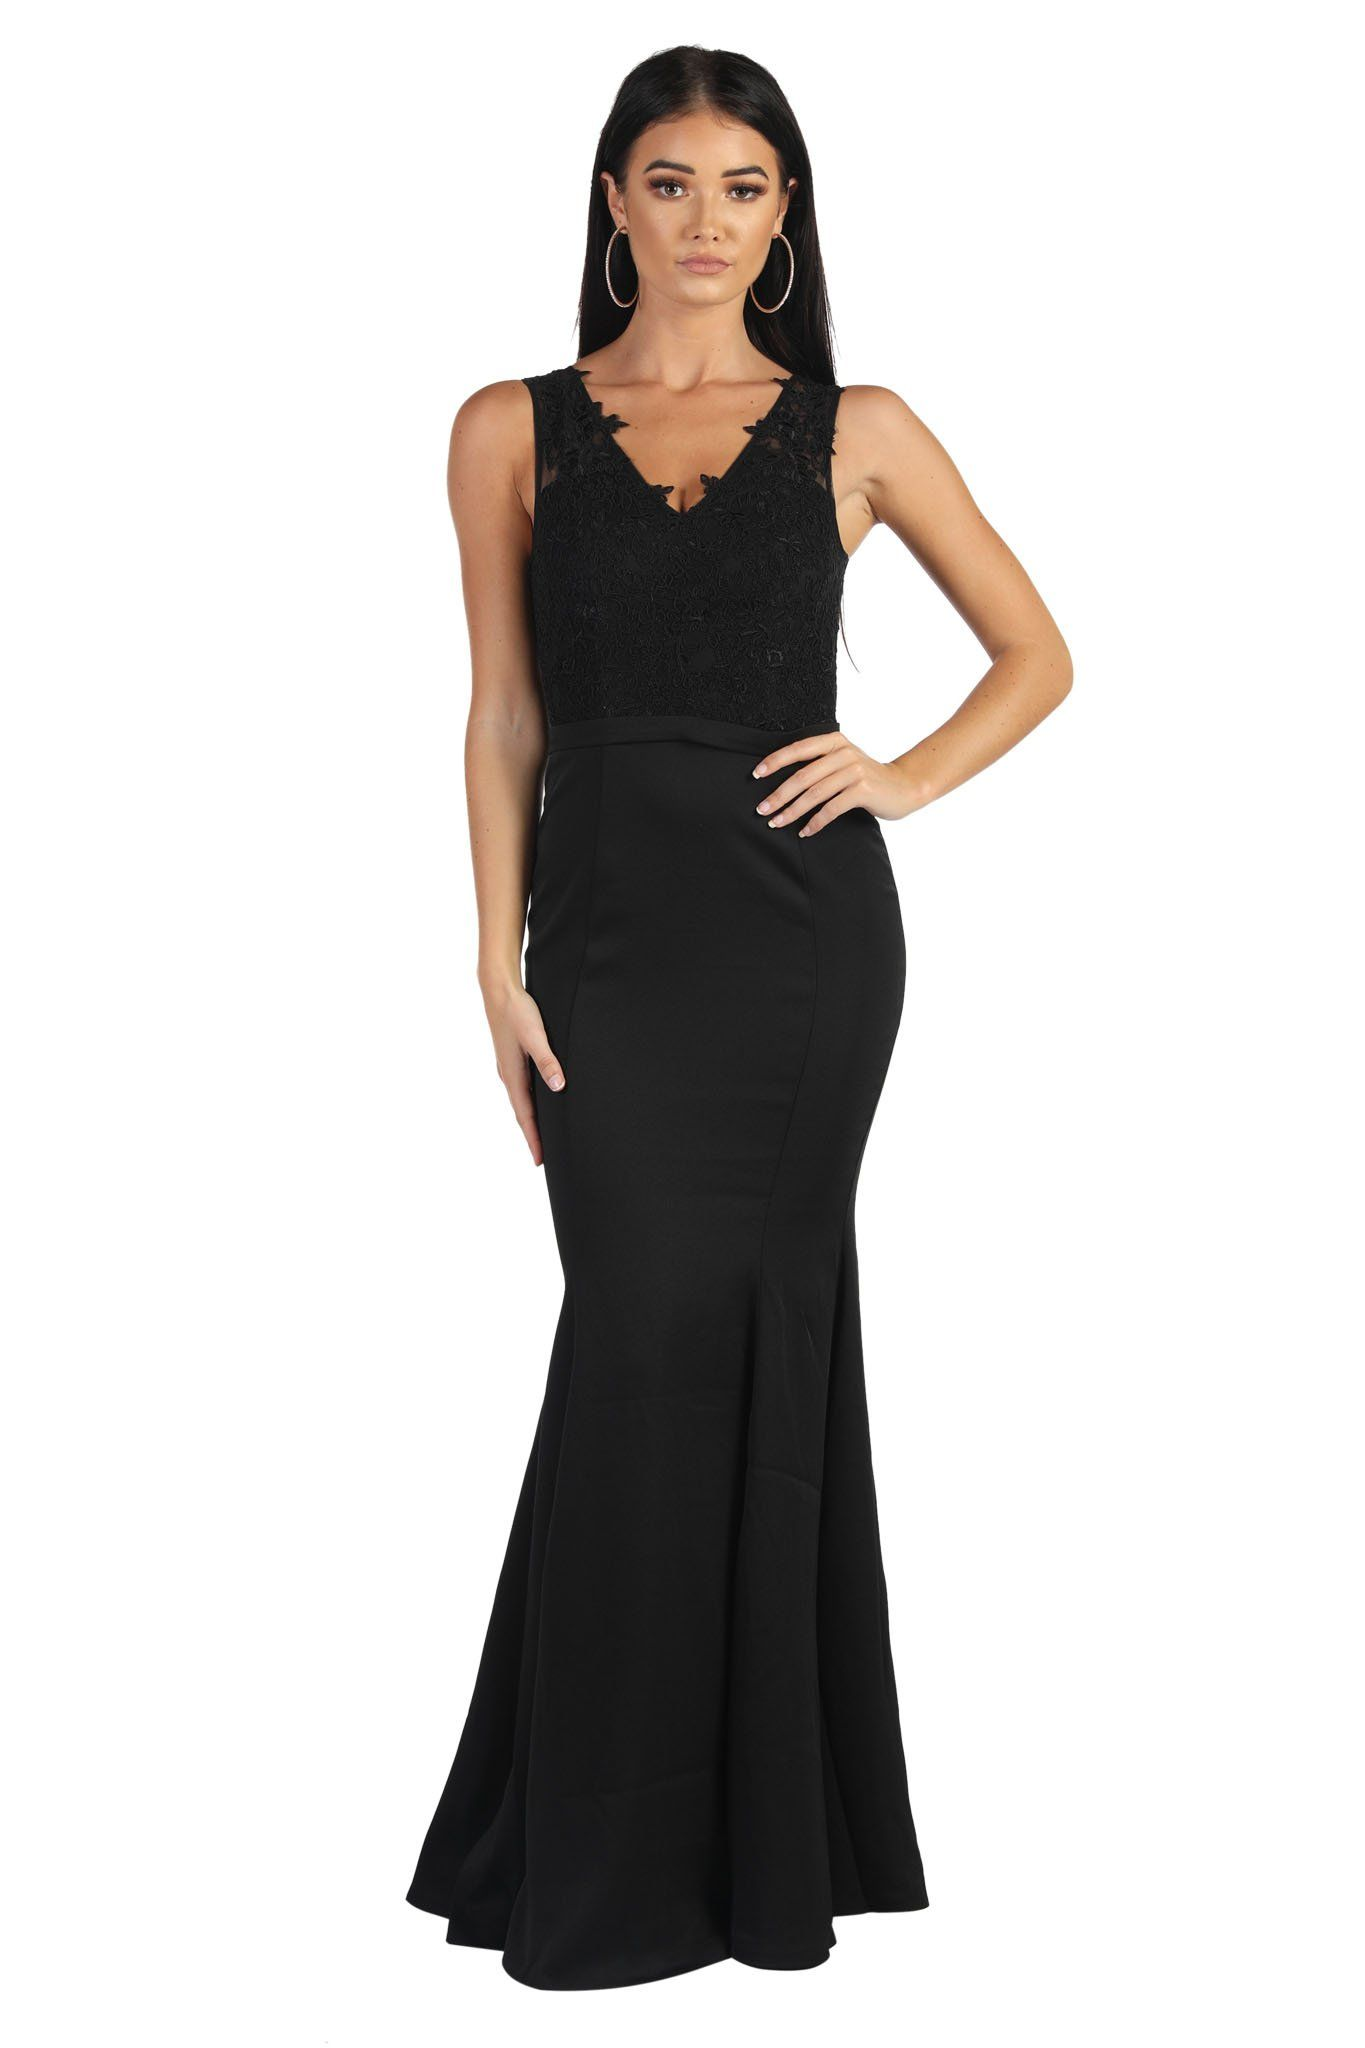 Black Form Fitting Maxi-Length Formal Evening Dress with Lace Bodice, V Neckline, Fit and Flare Skirt